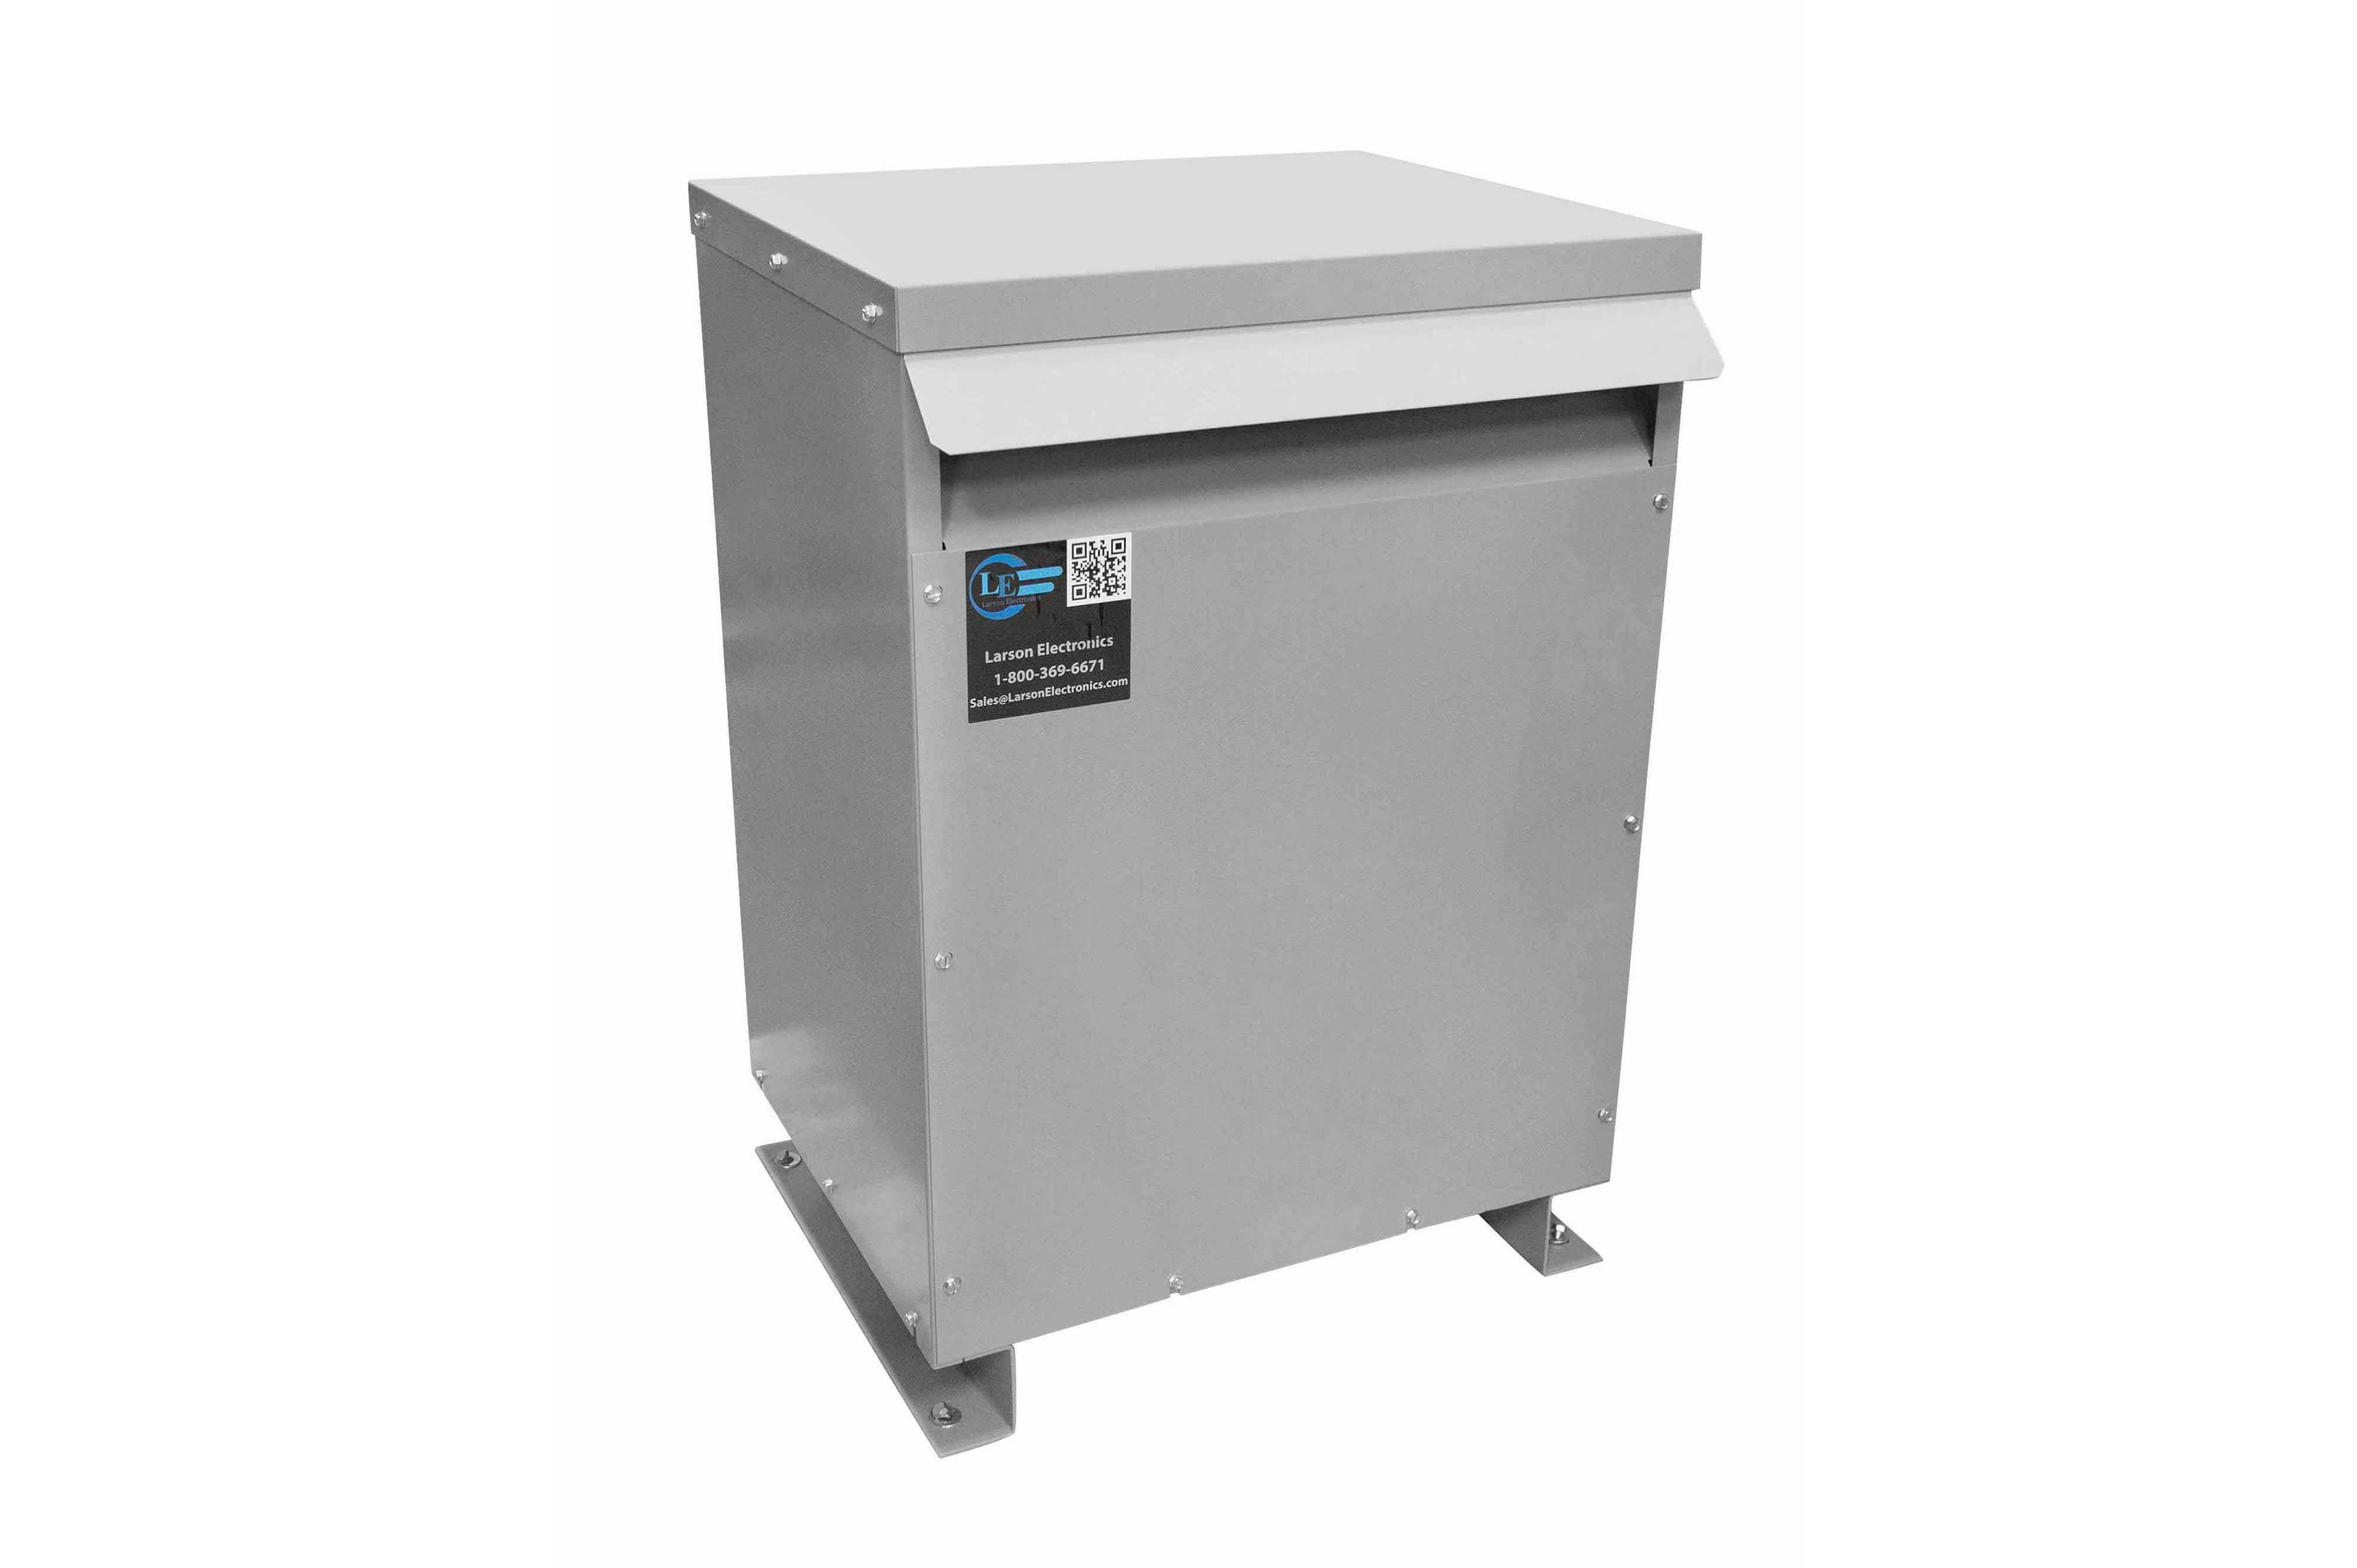 800 kVA 3PH Isolation Transformer, 400V Wye Primary, 600V Delta Secondary, N3R, Ventilated, 60 Hz